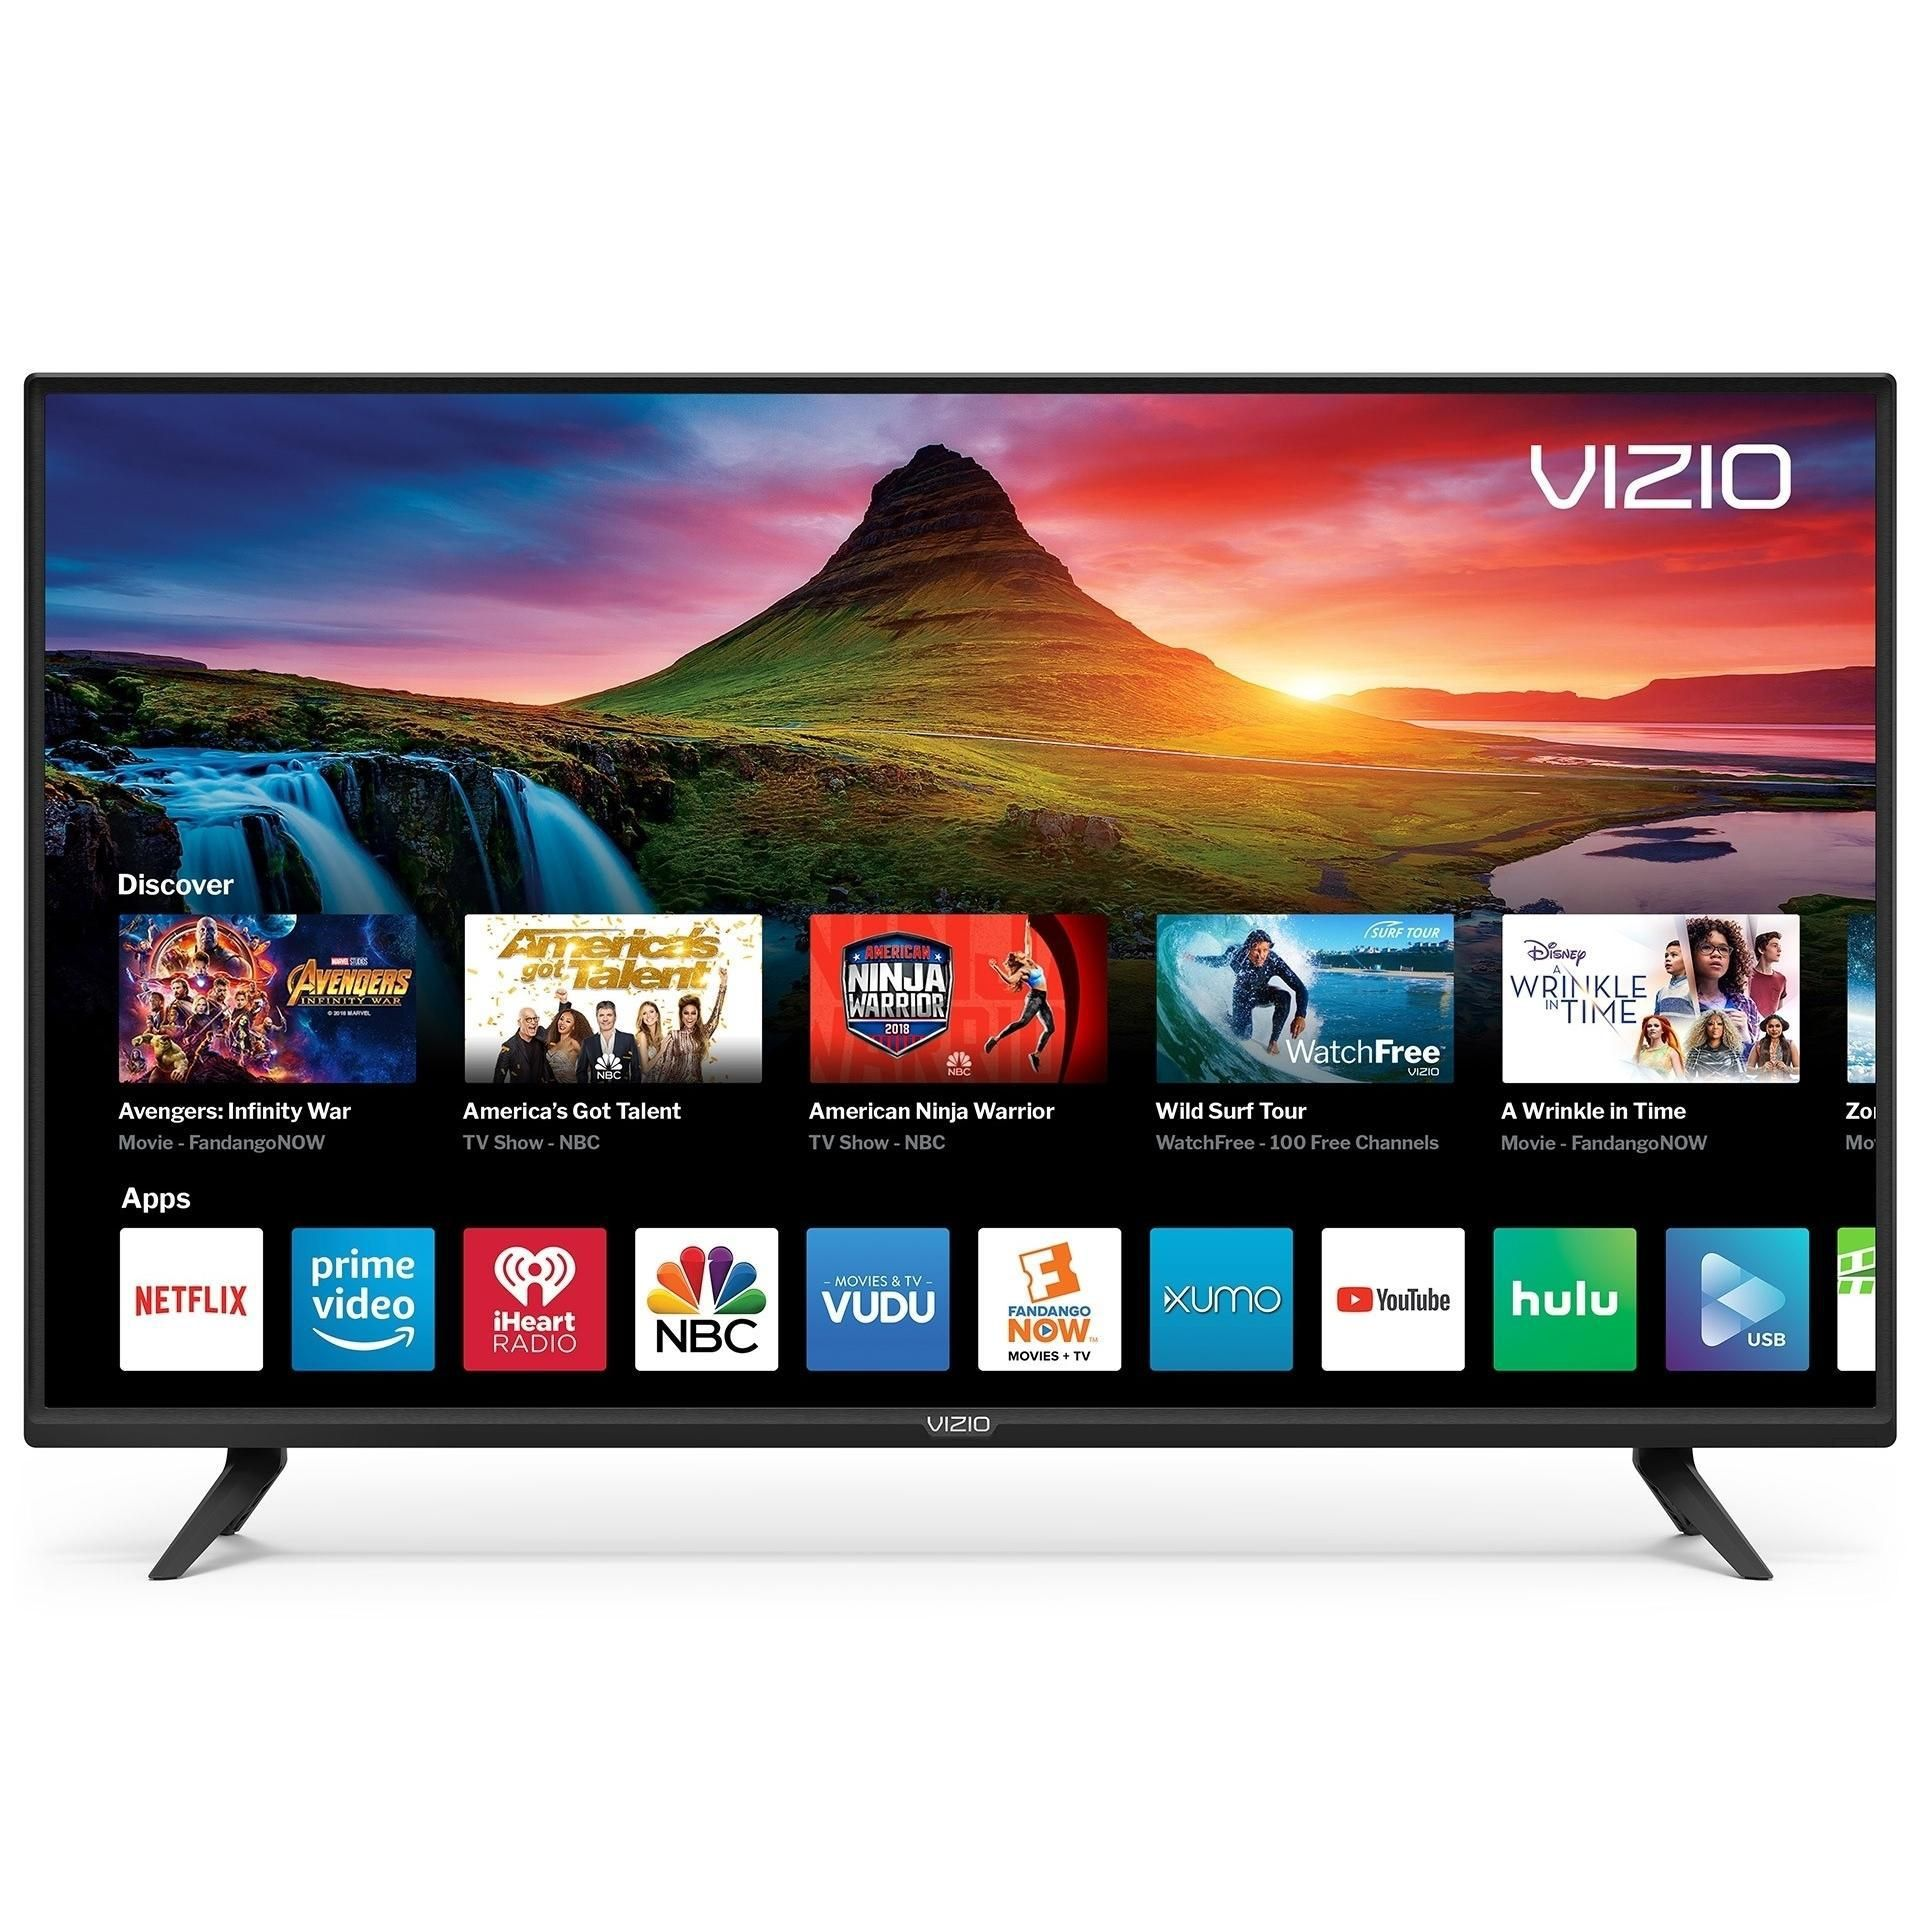 Smart Tv Led Full Hd 40 Vizio D40f G9 Smart Tv Tvs Tv Built In